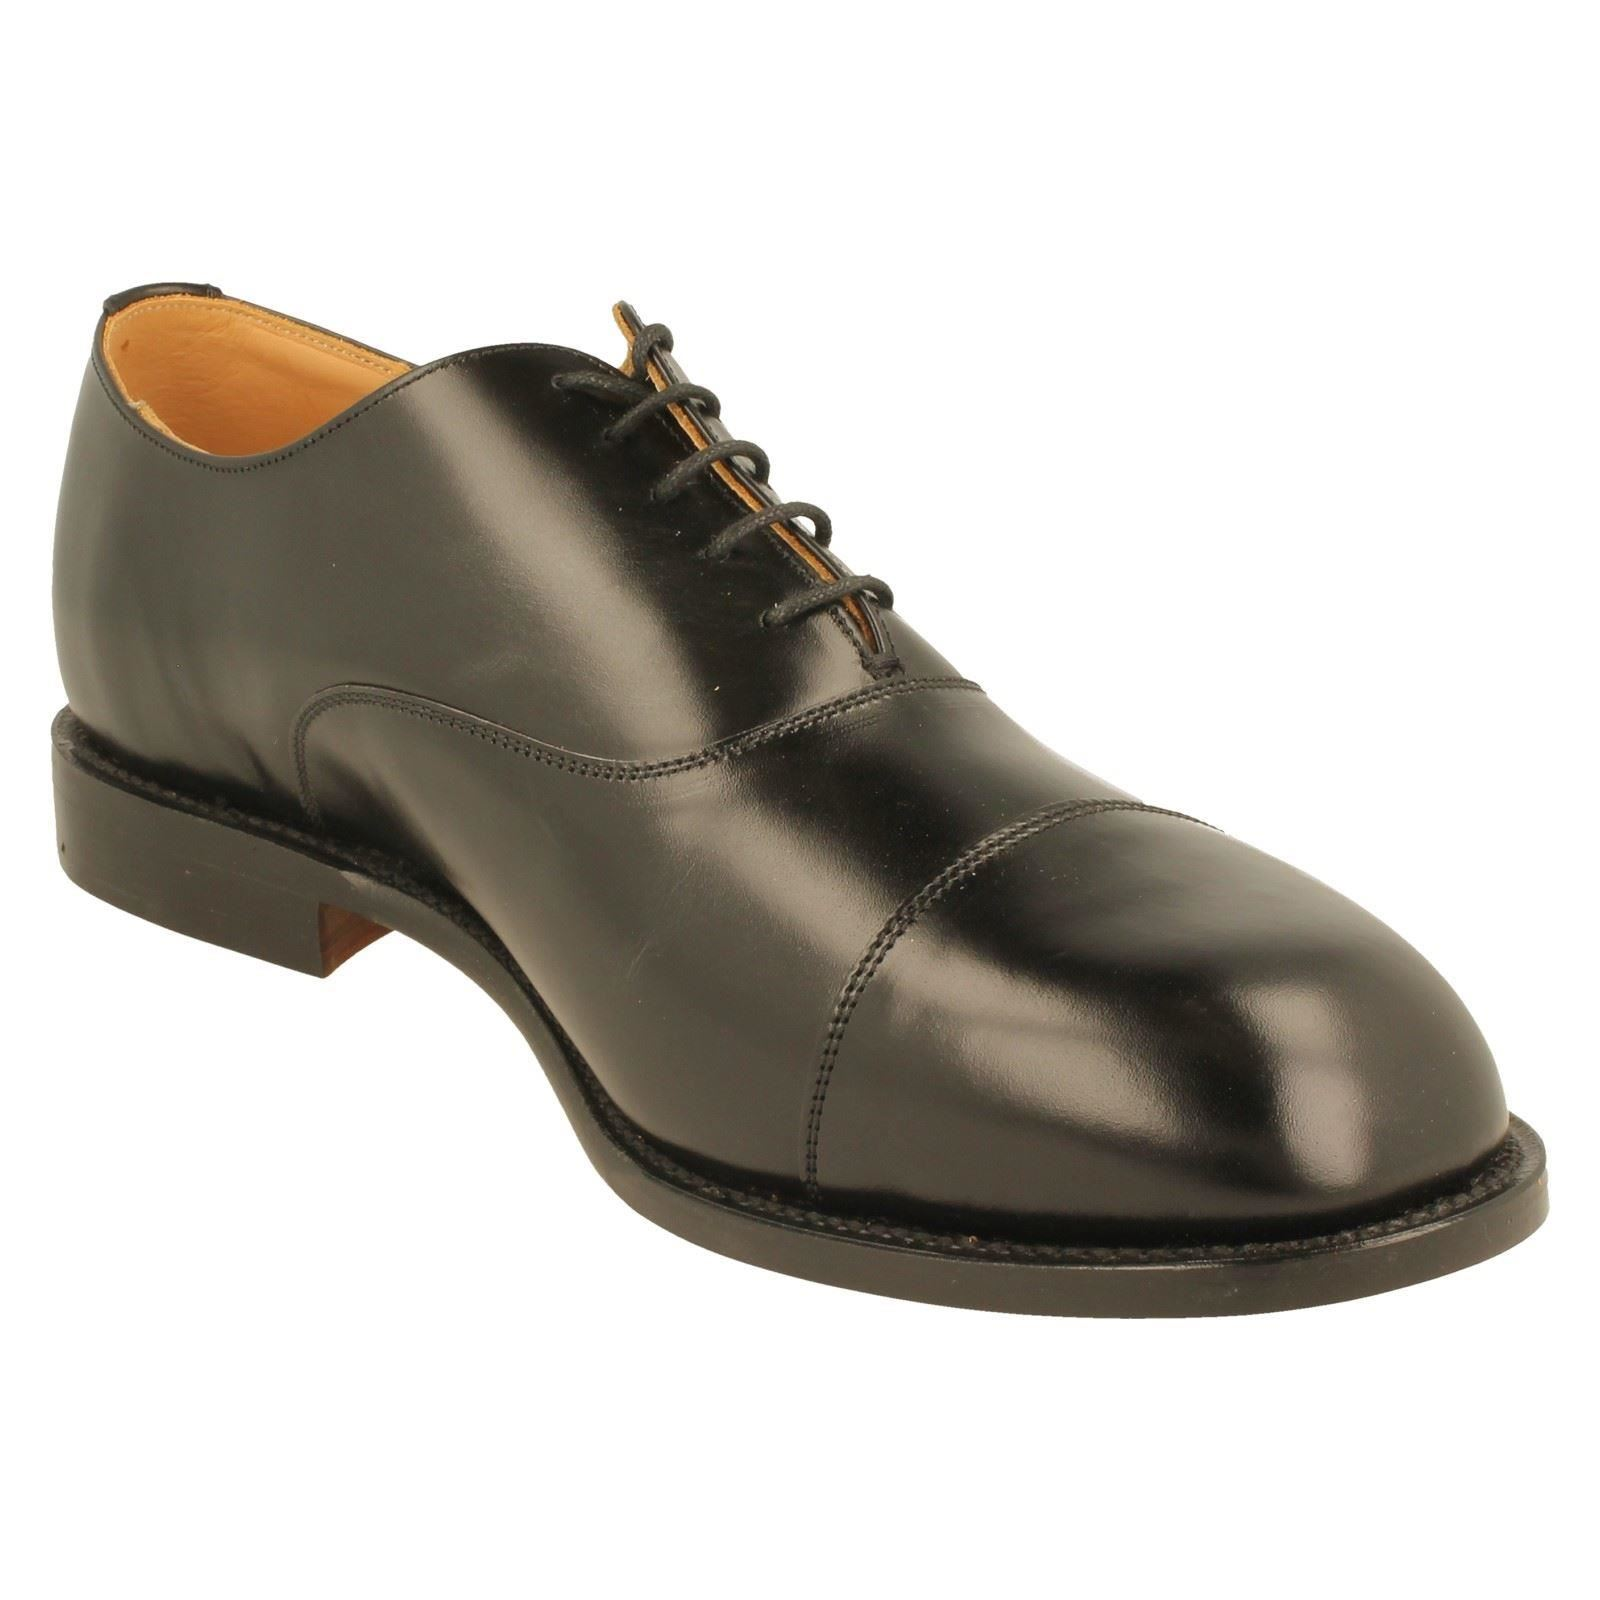 Herren DB Oxford Schuhes Wide Goodyear Welted  EE-4E Wide Schuhes Fitt The Label Ivor-W c7b3a9